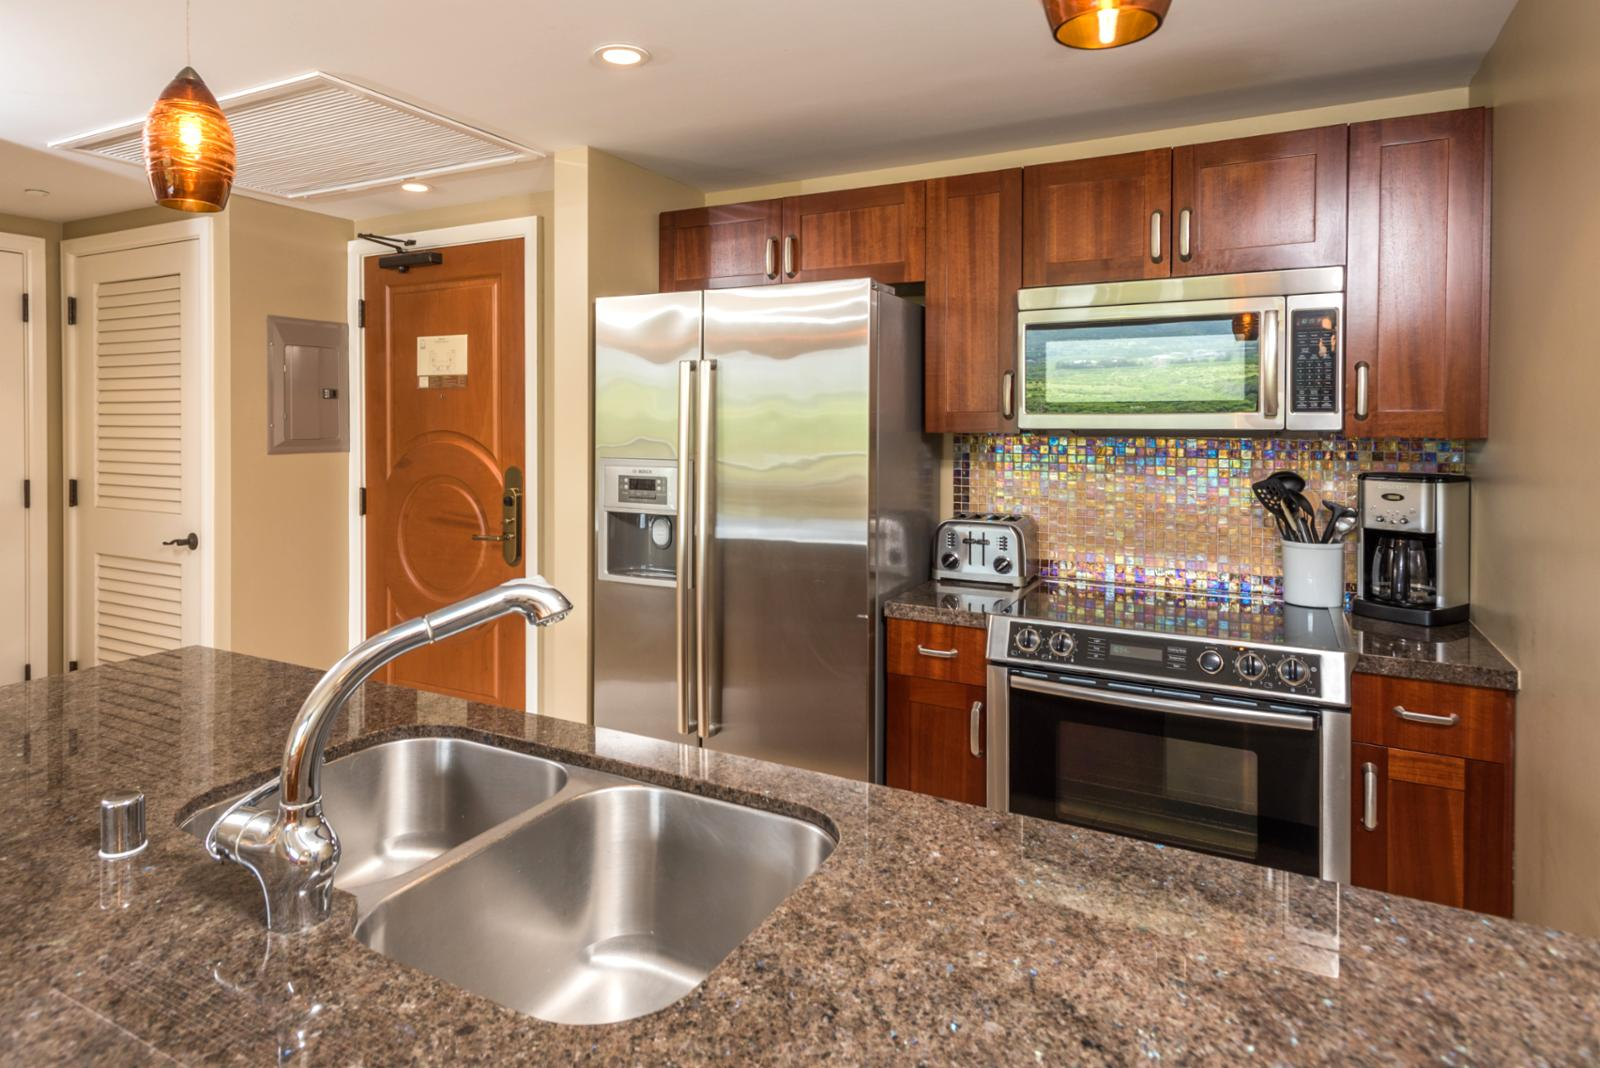 Chefs kitchen stainless appliances